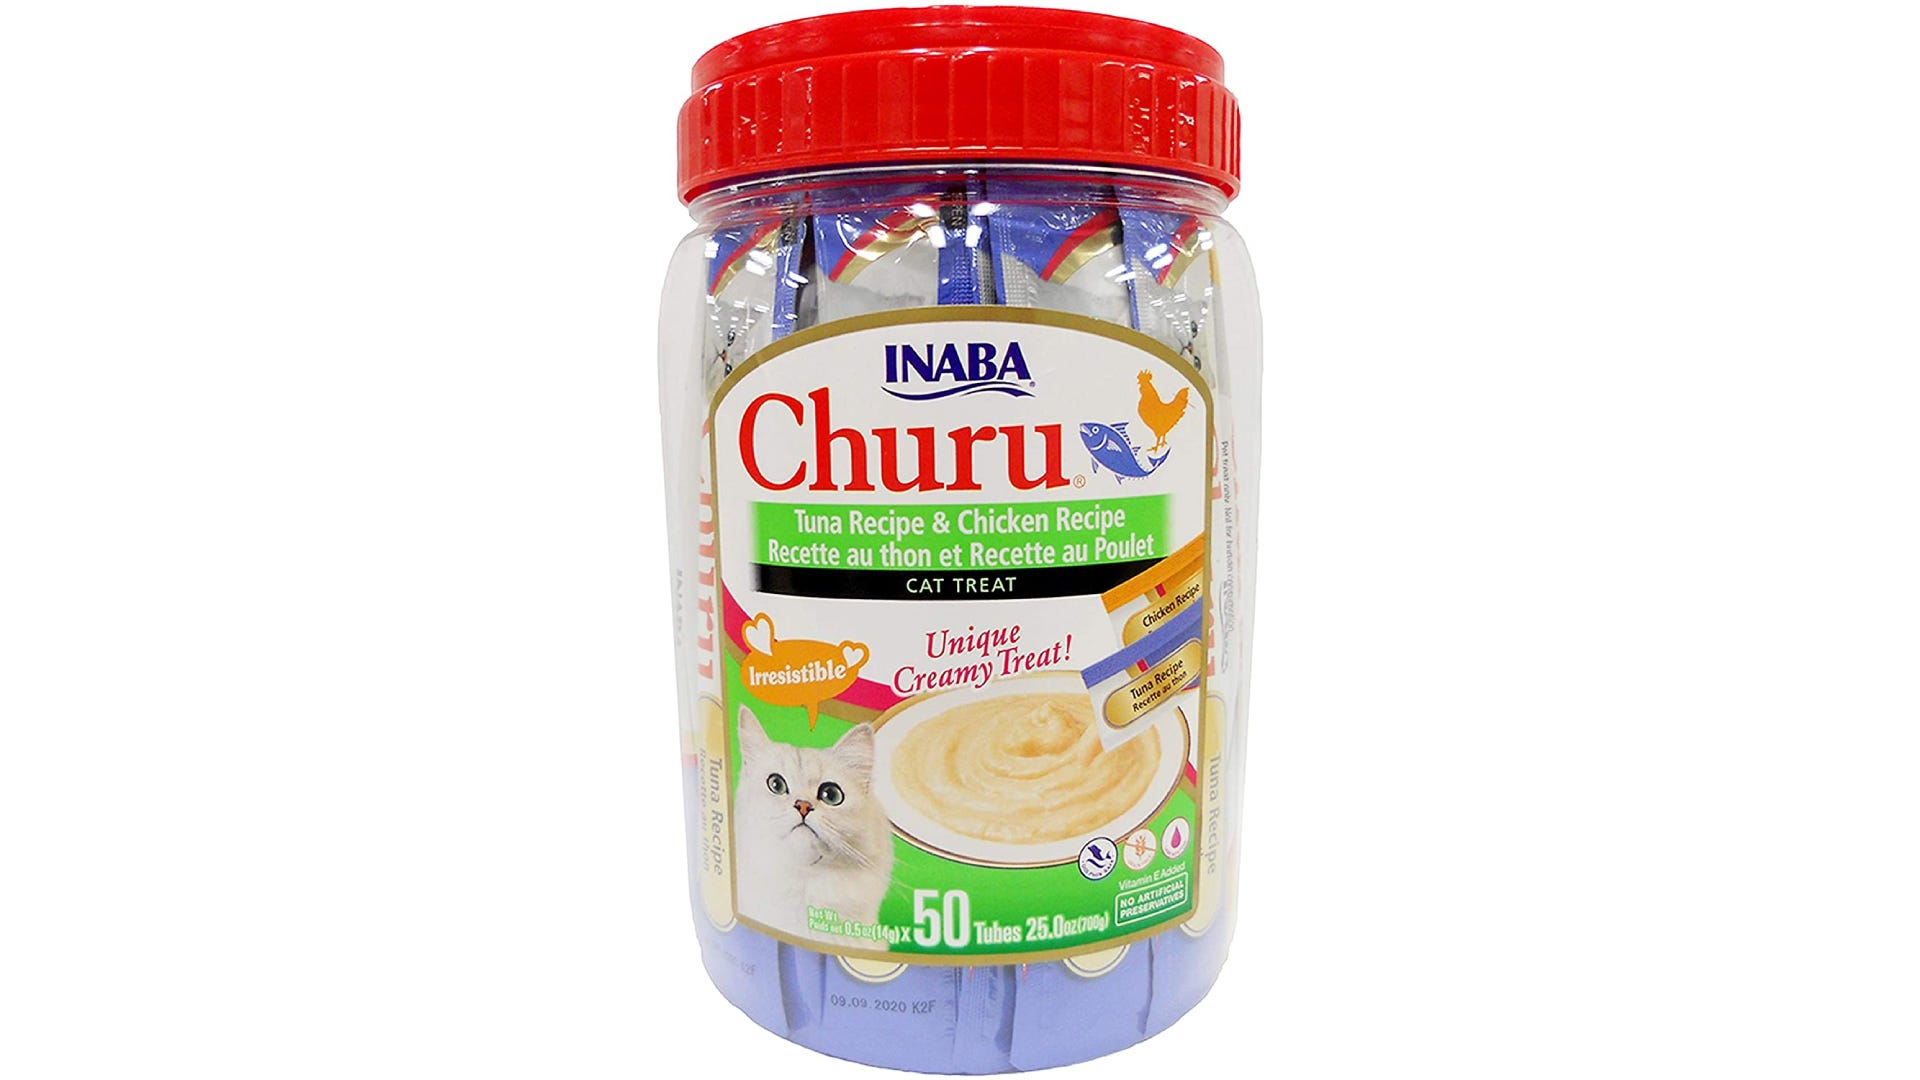 A plastic container filled with INABA Churu liquid cat treats